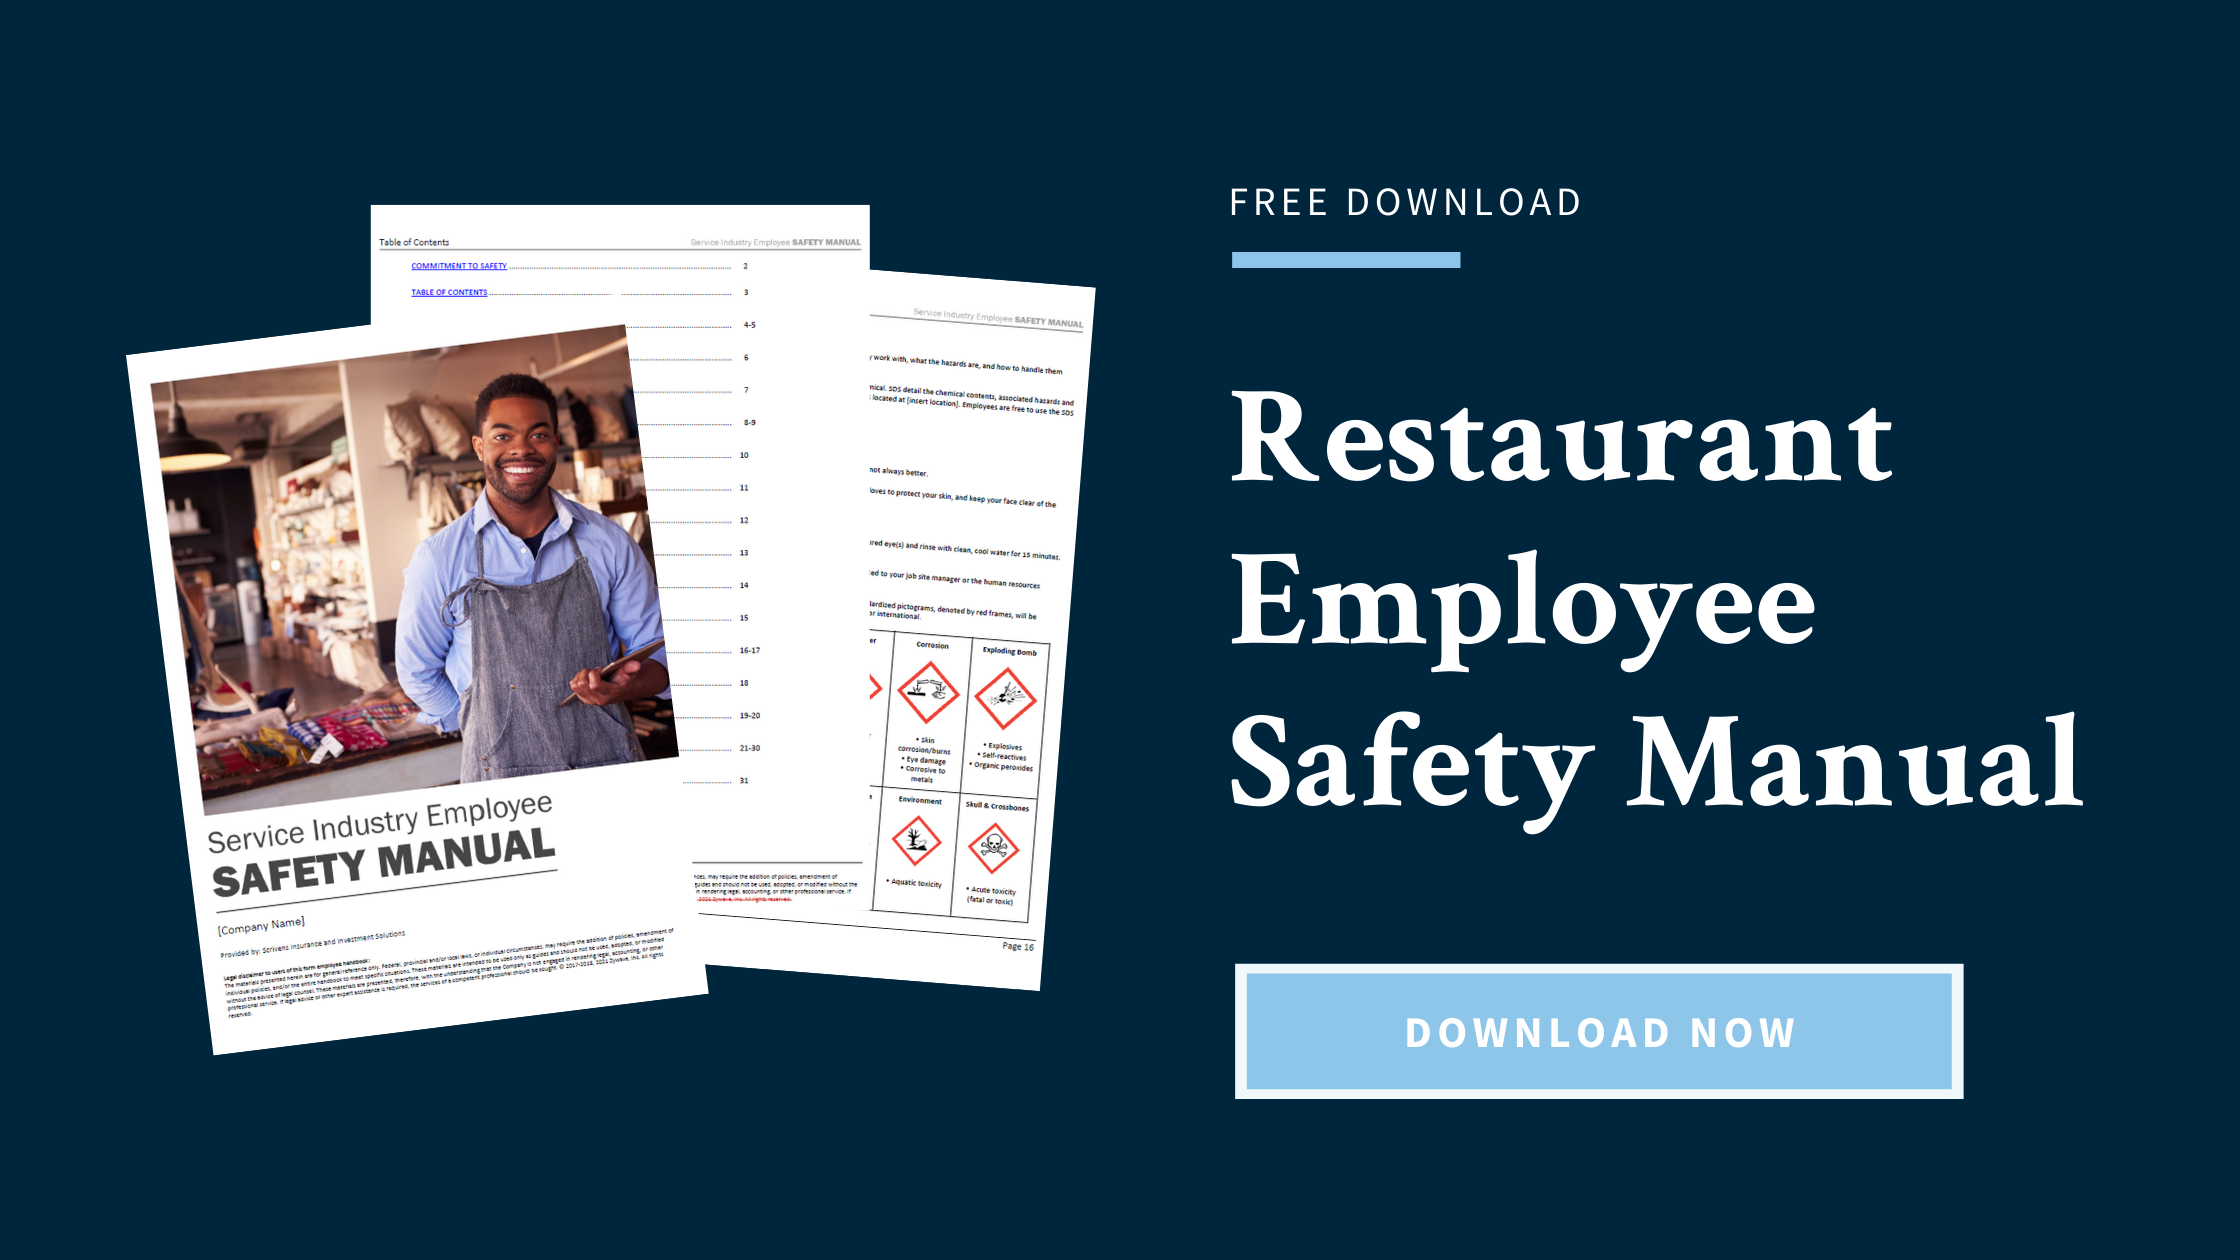 Free Download: Restaurant Employee Safety Manual (Click to download)